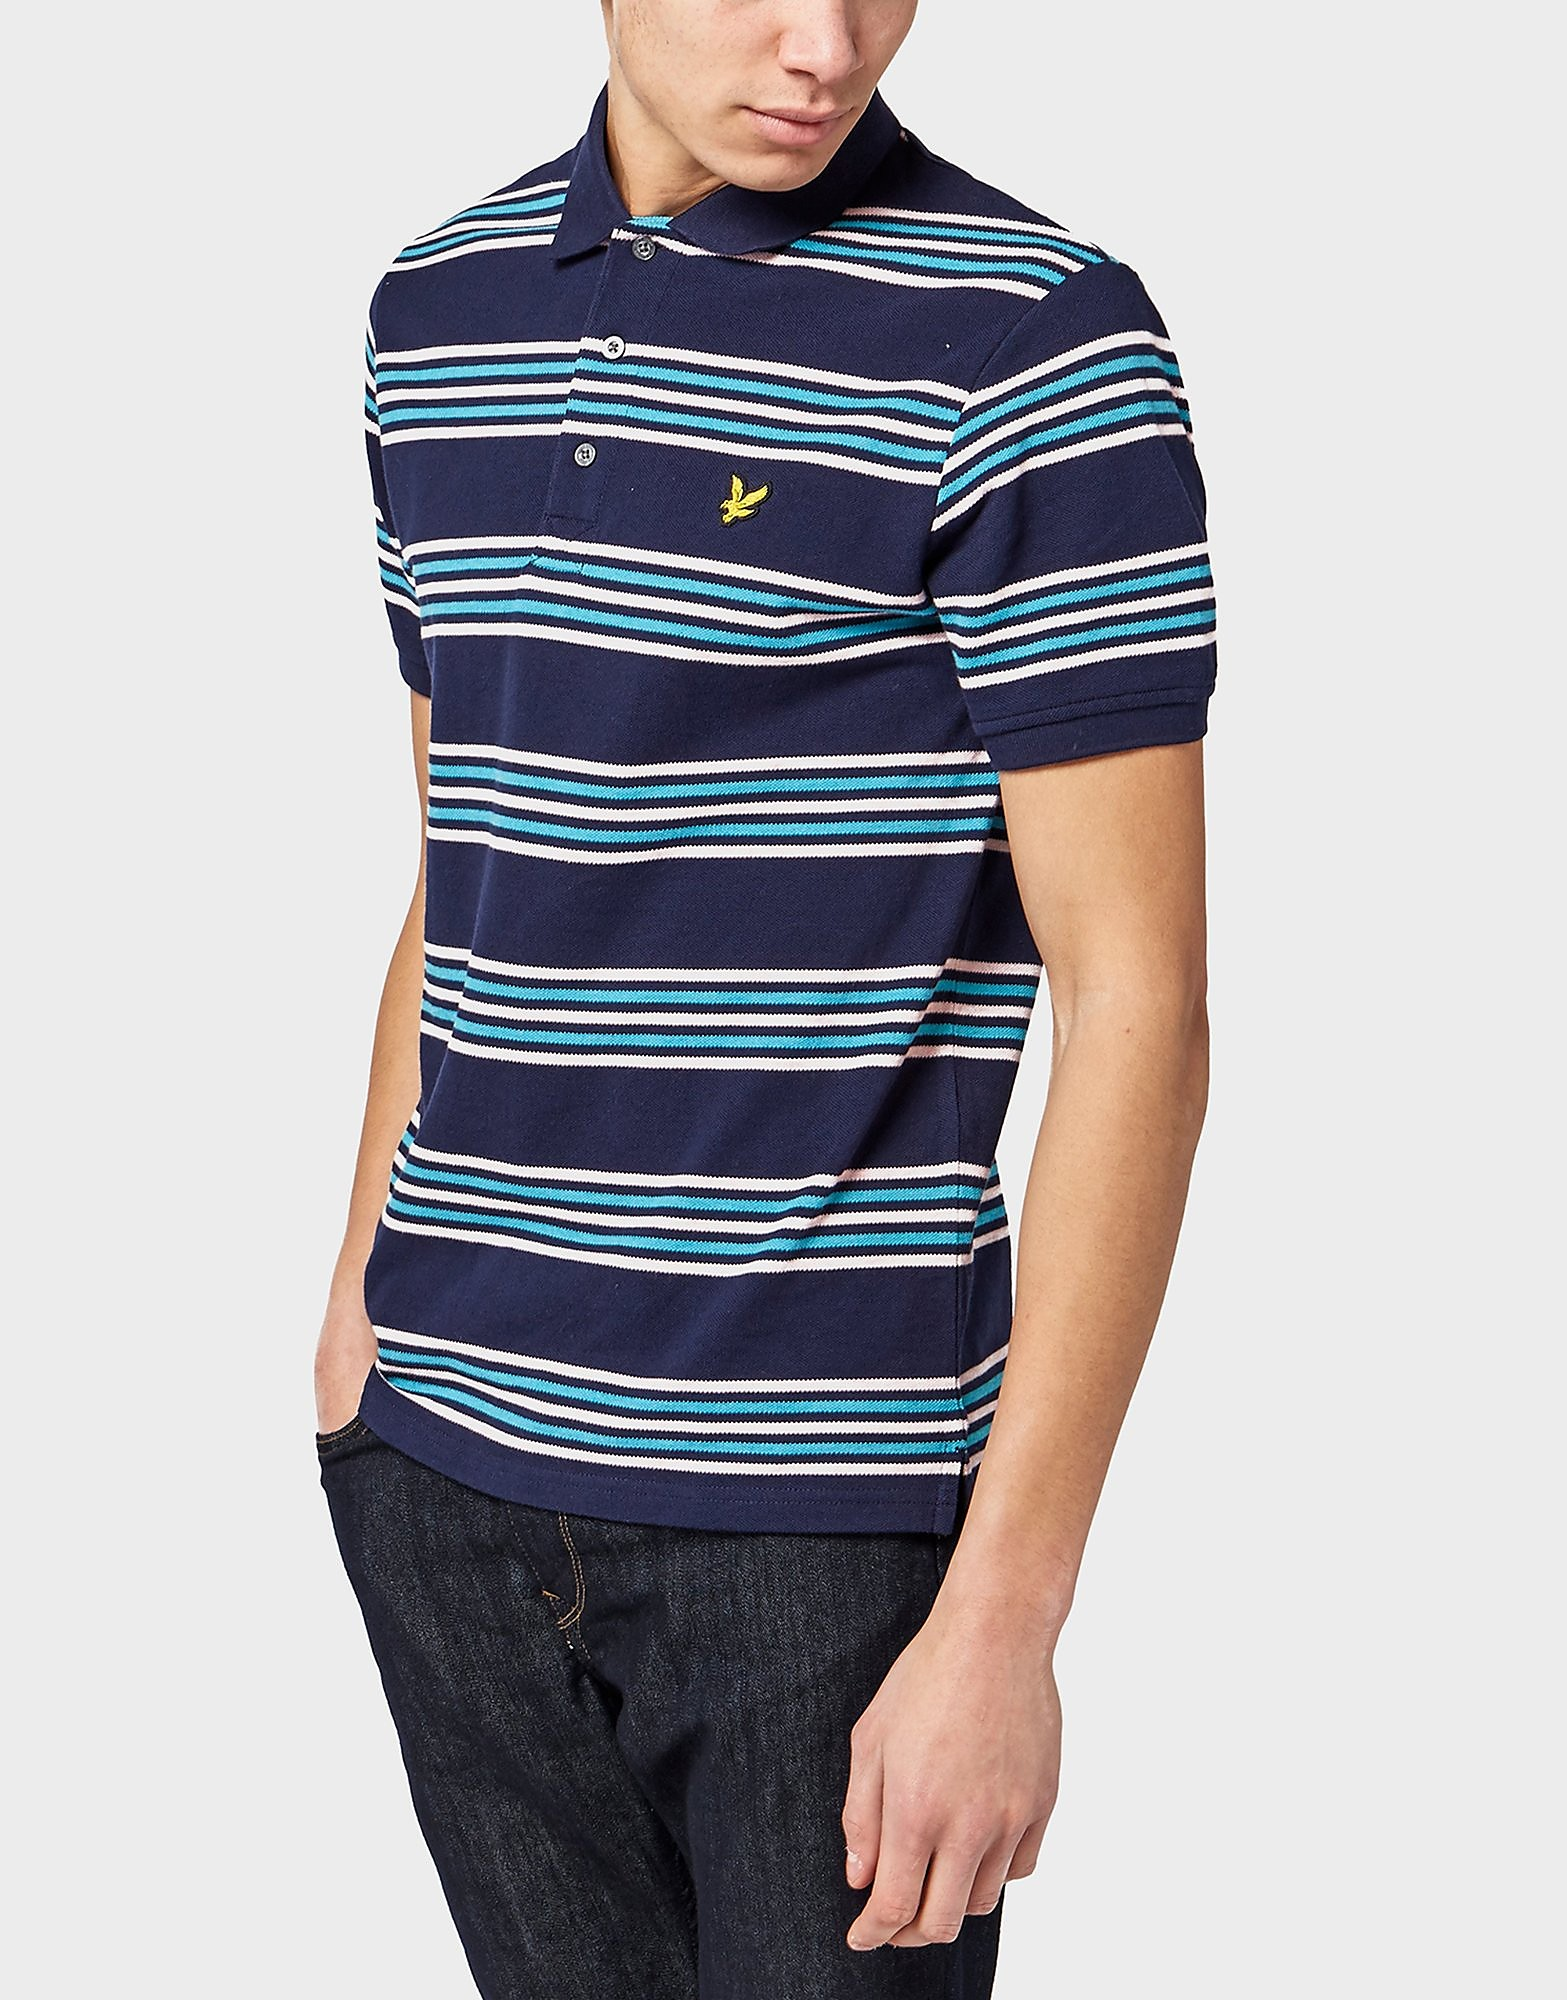 Lyle & Scott Horizontal Stripe Polo Shirt